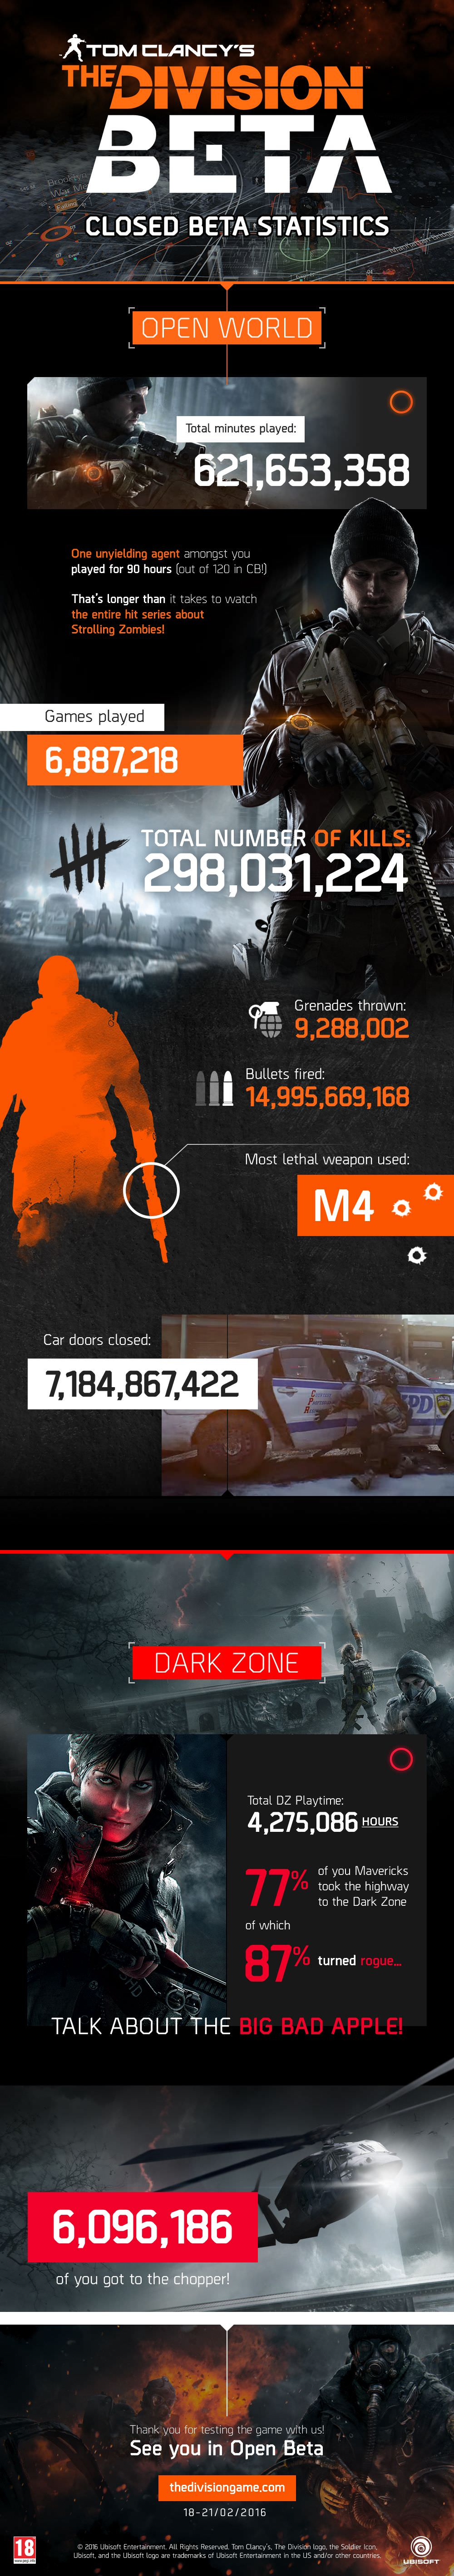 the_division_closed_beta_info